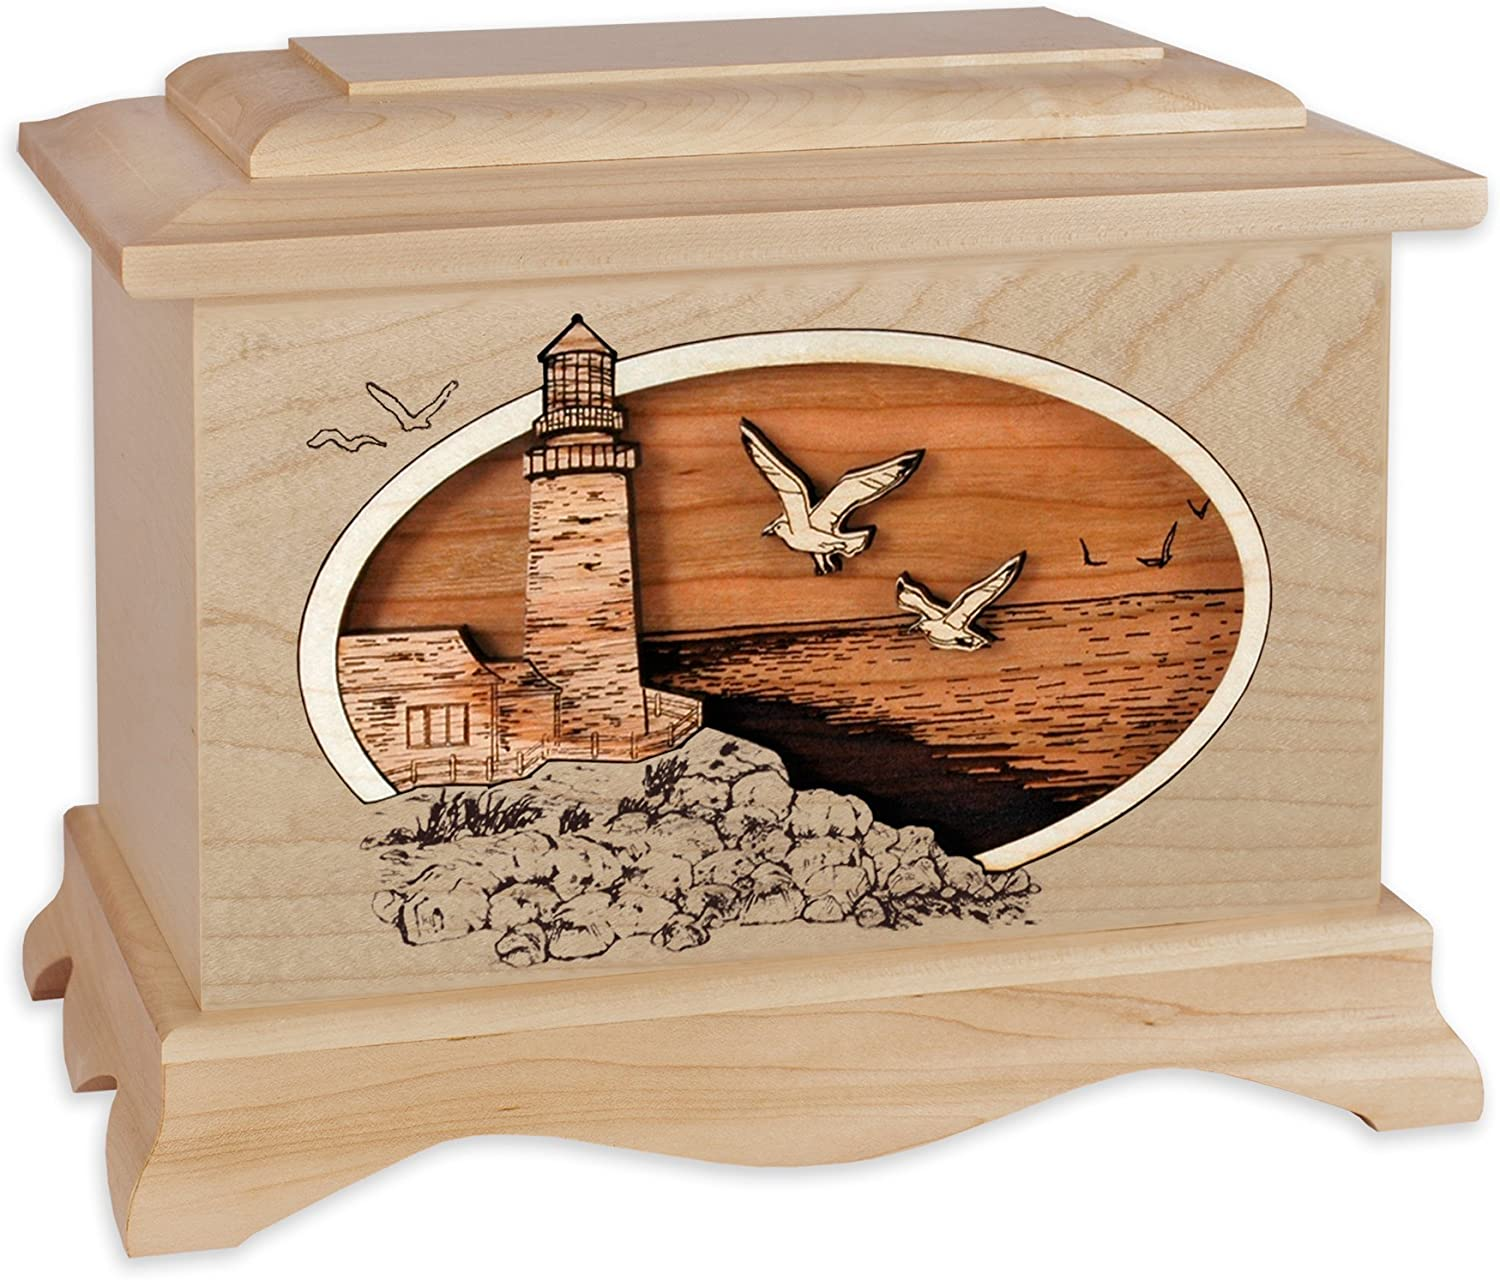 Wooden Cremation Urn - Ambassador Shape with Coastal Lighthouse 3-Dimensional Inlay Wood Art Memorial - Funeral Urns for Adults (Classic Lighthouse, Maple)